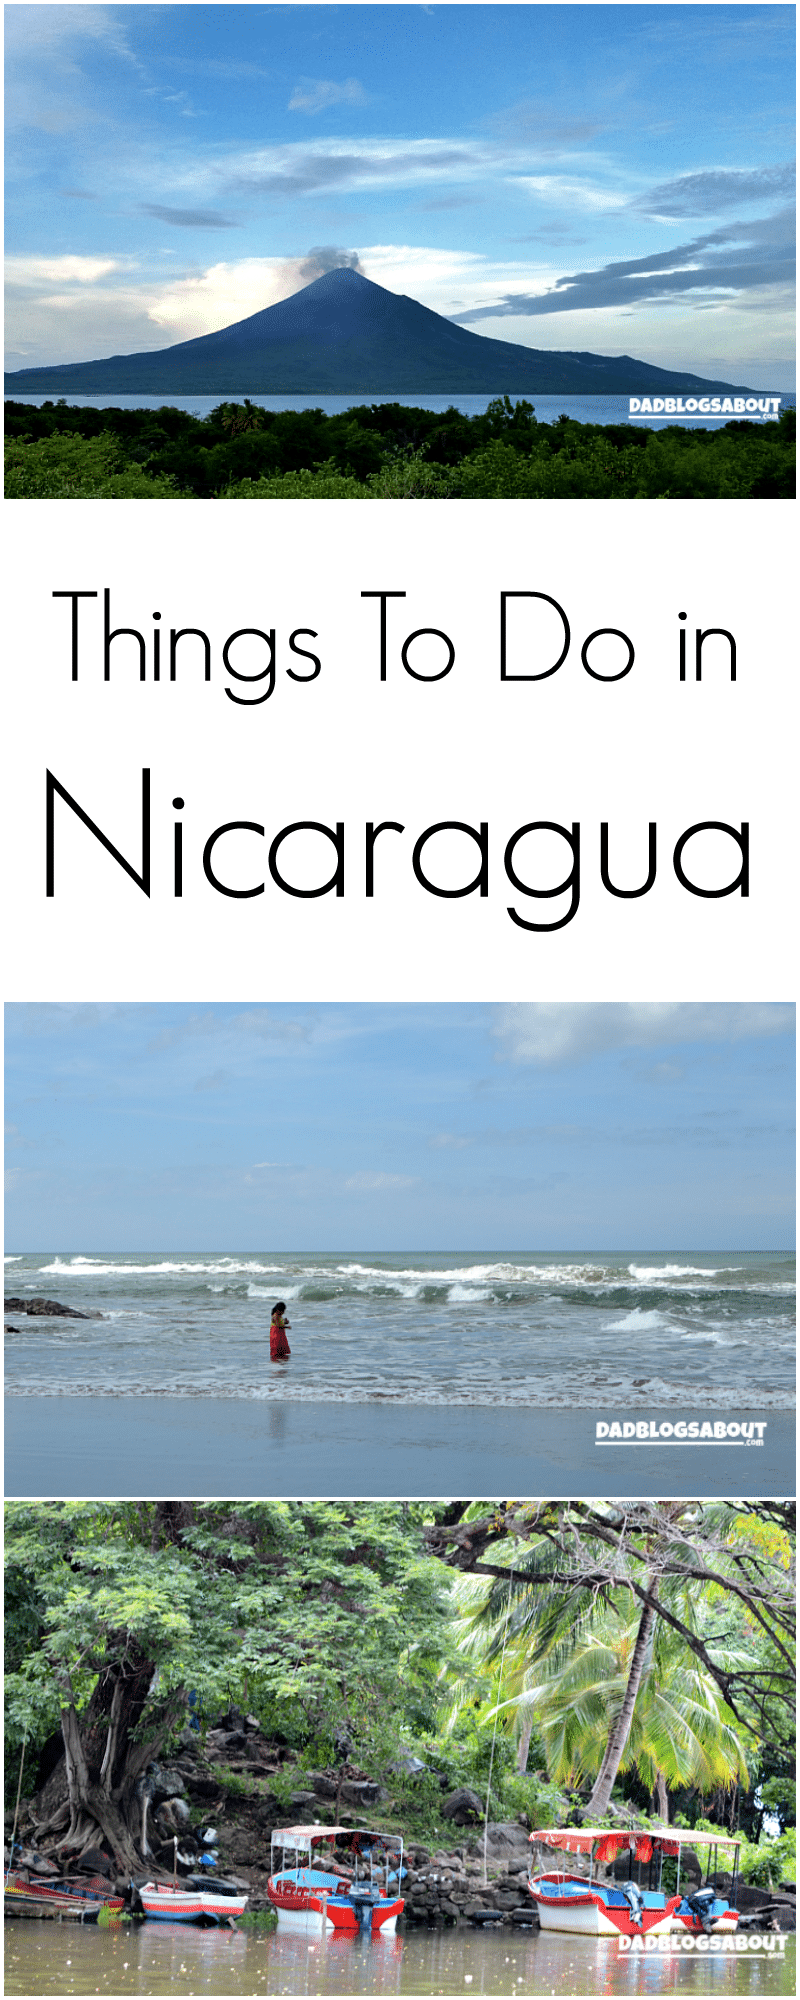 Things-To-Do-in-Nicaragua-pinnable-Dad-Blogs-About